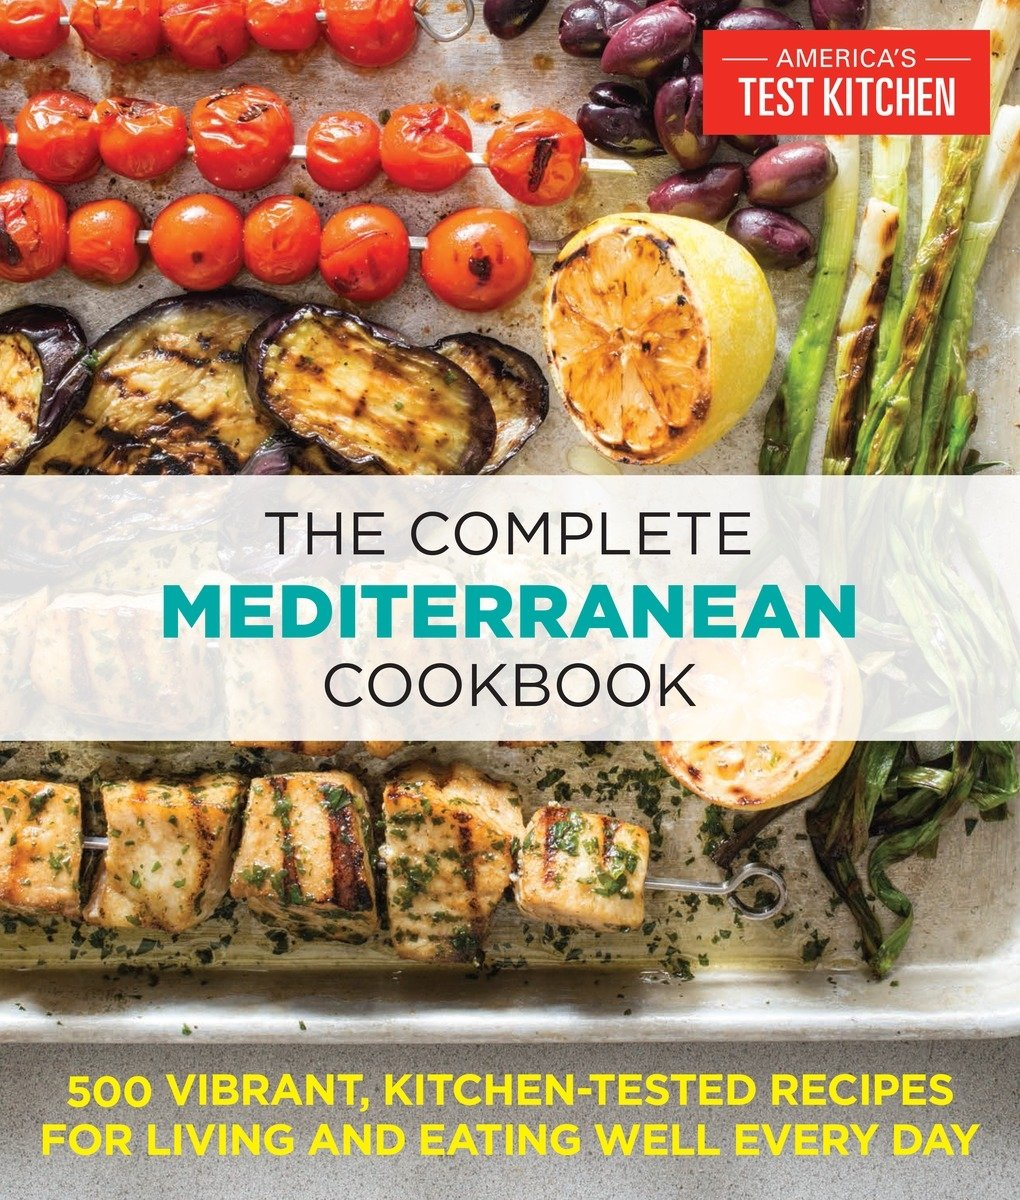 Complete Mediterranean Cookbook Vibrant Kitchen Tested